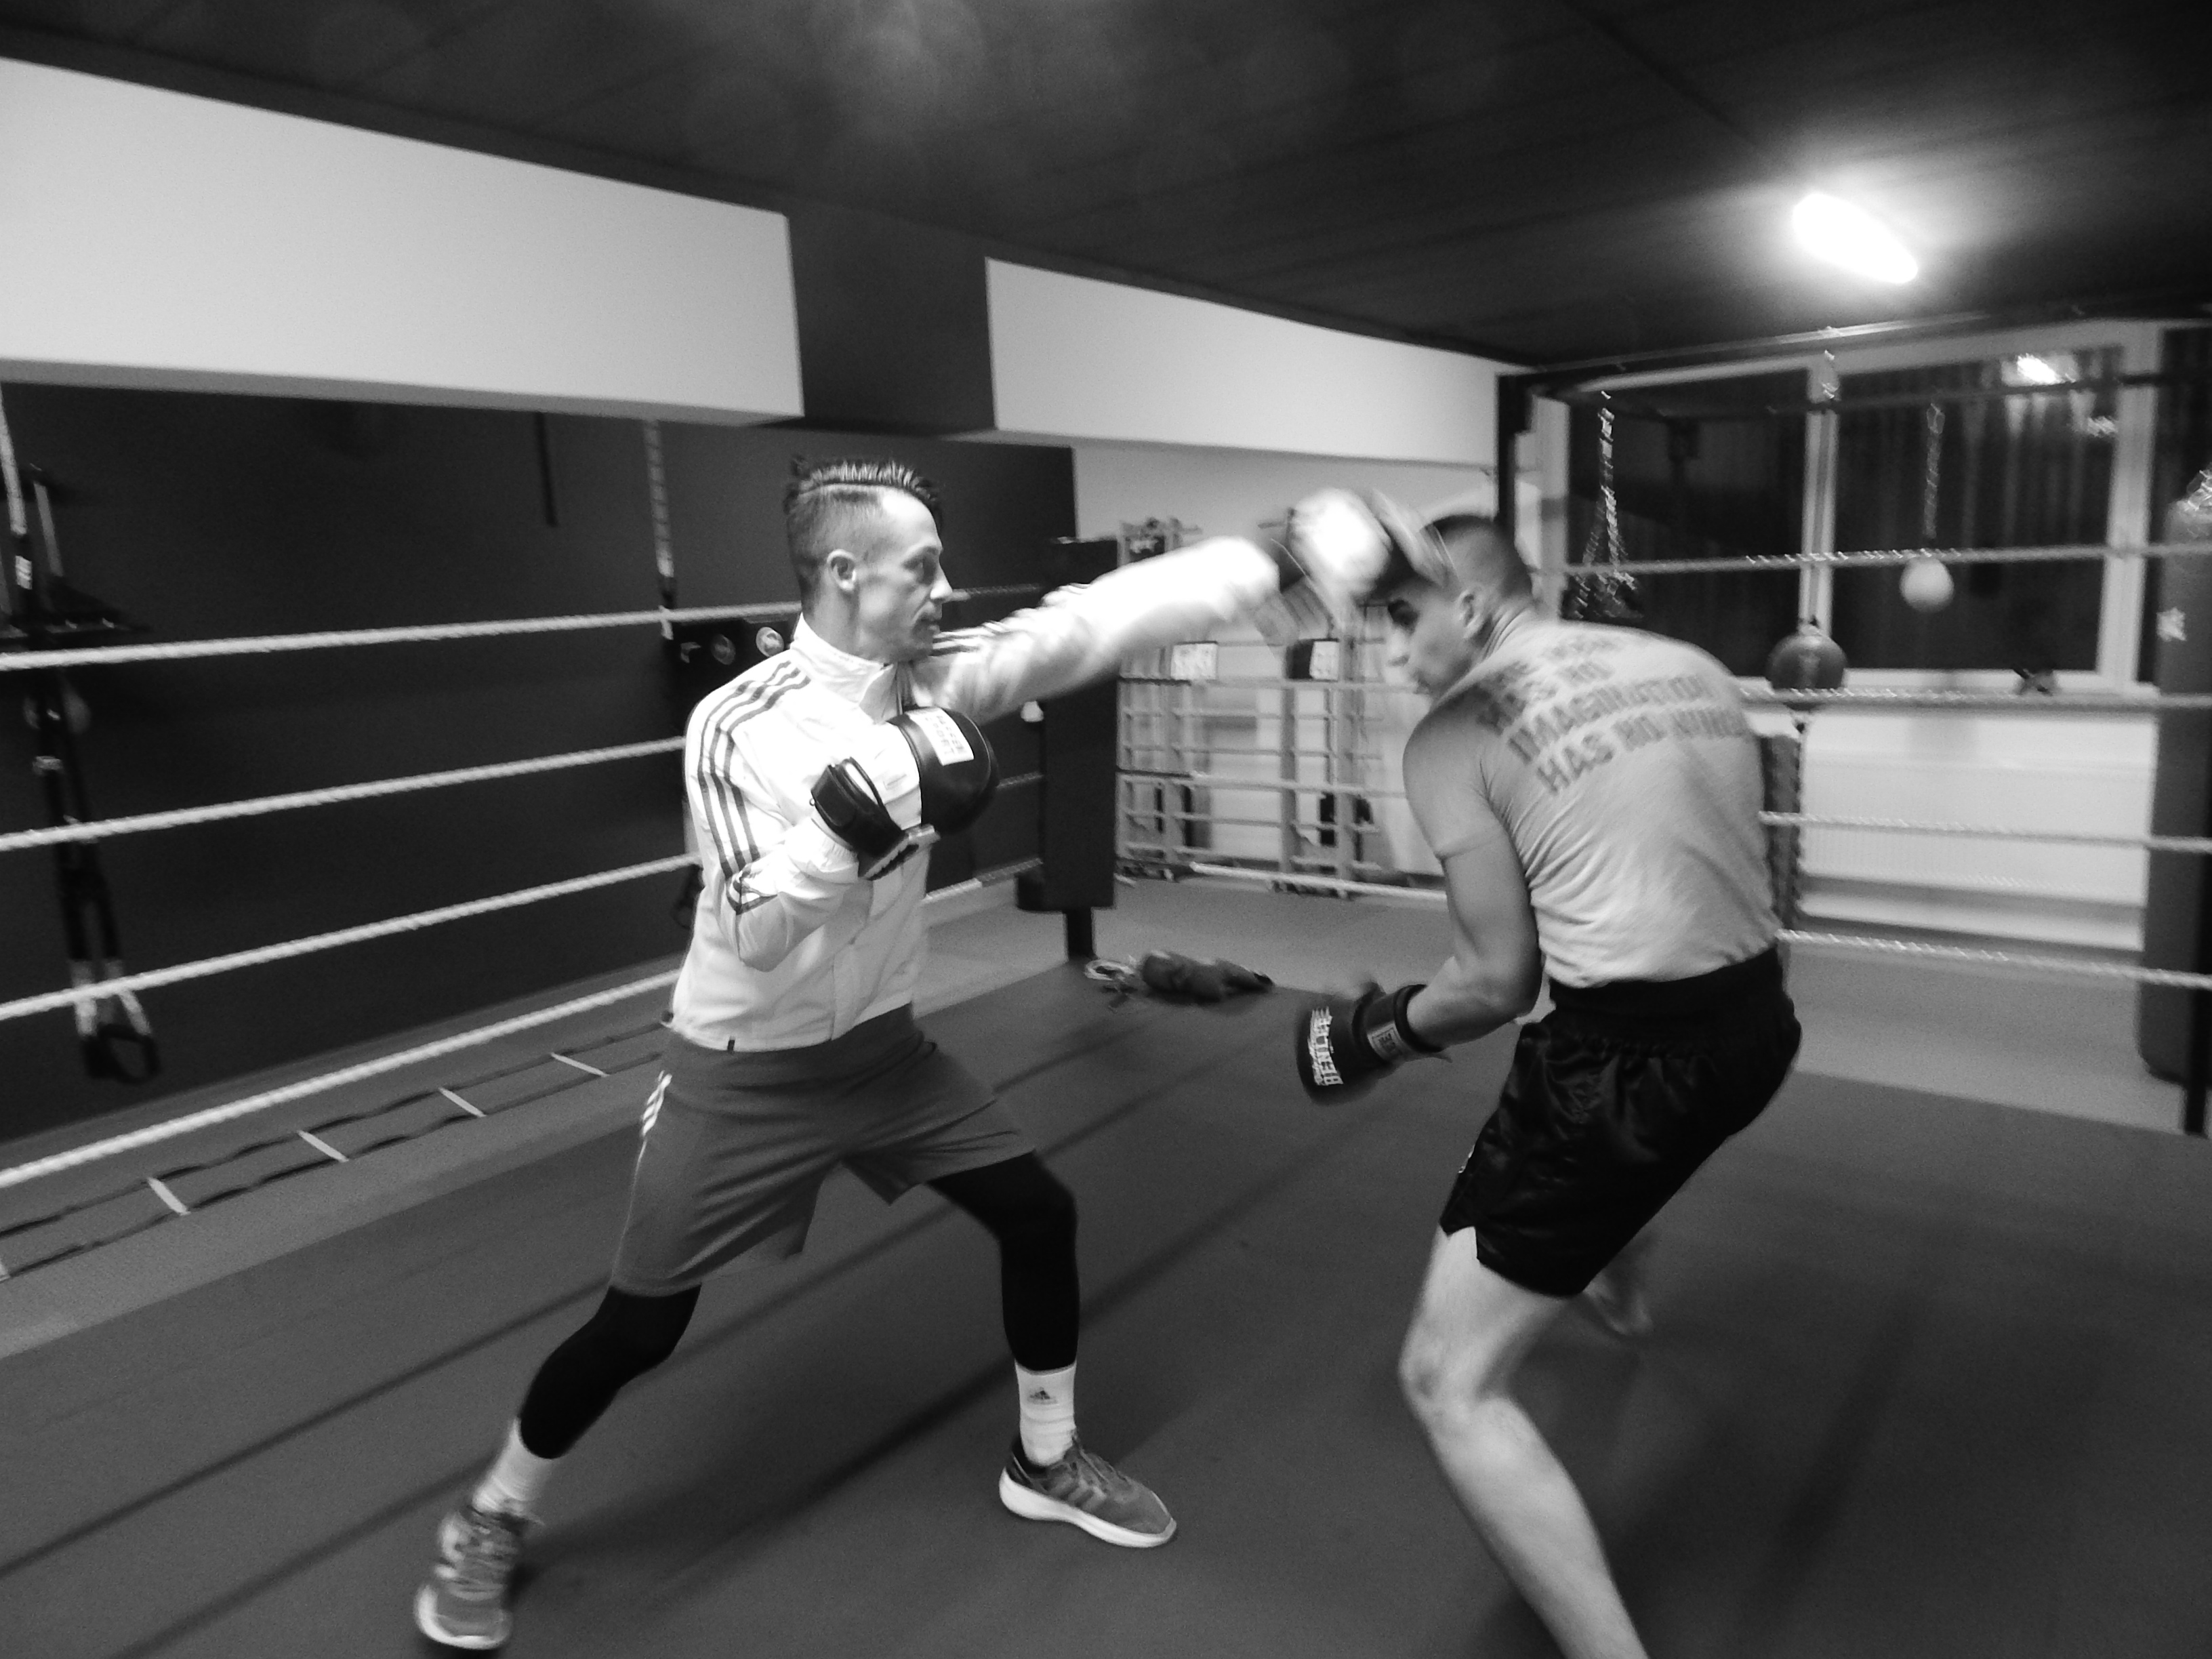 Jab Training